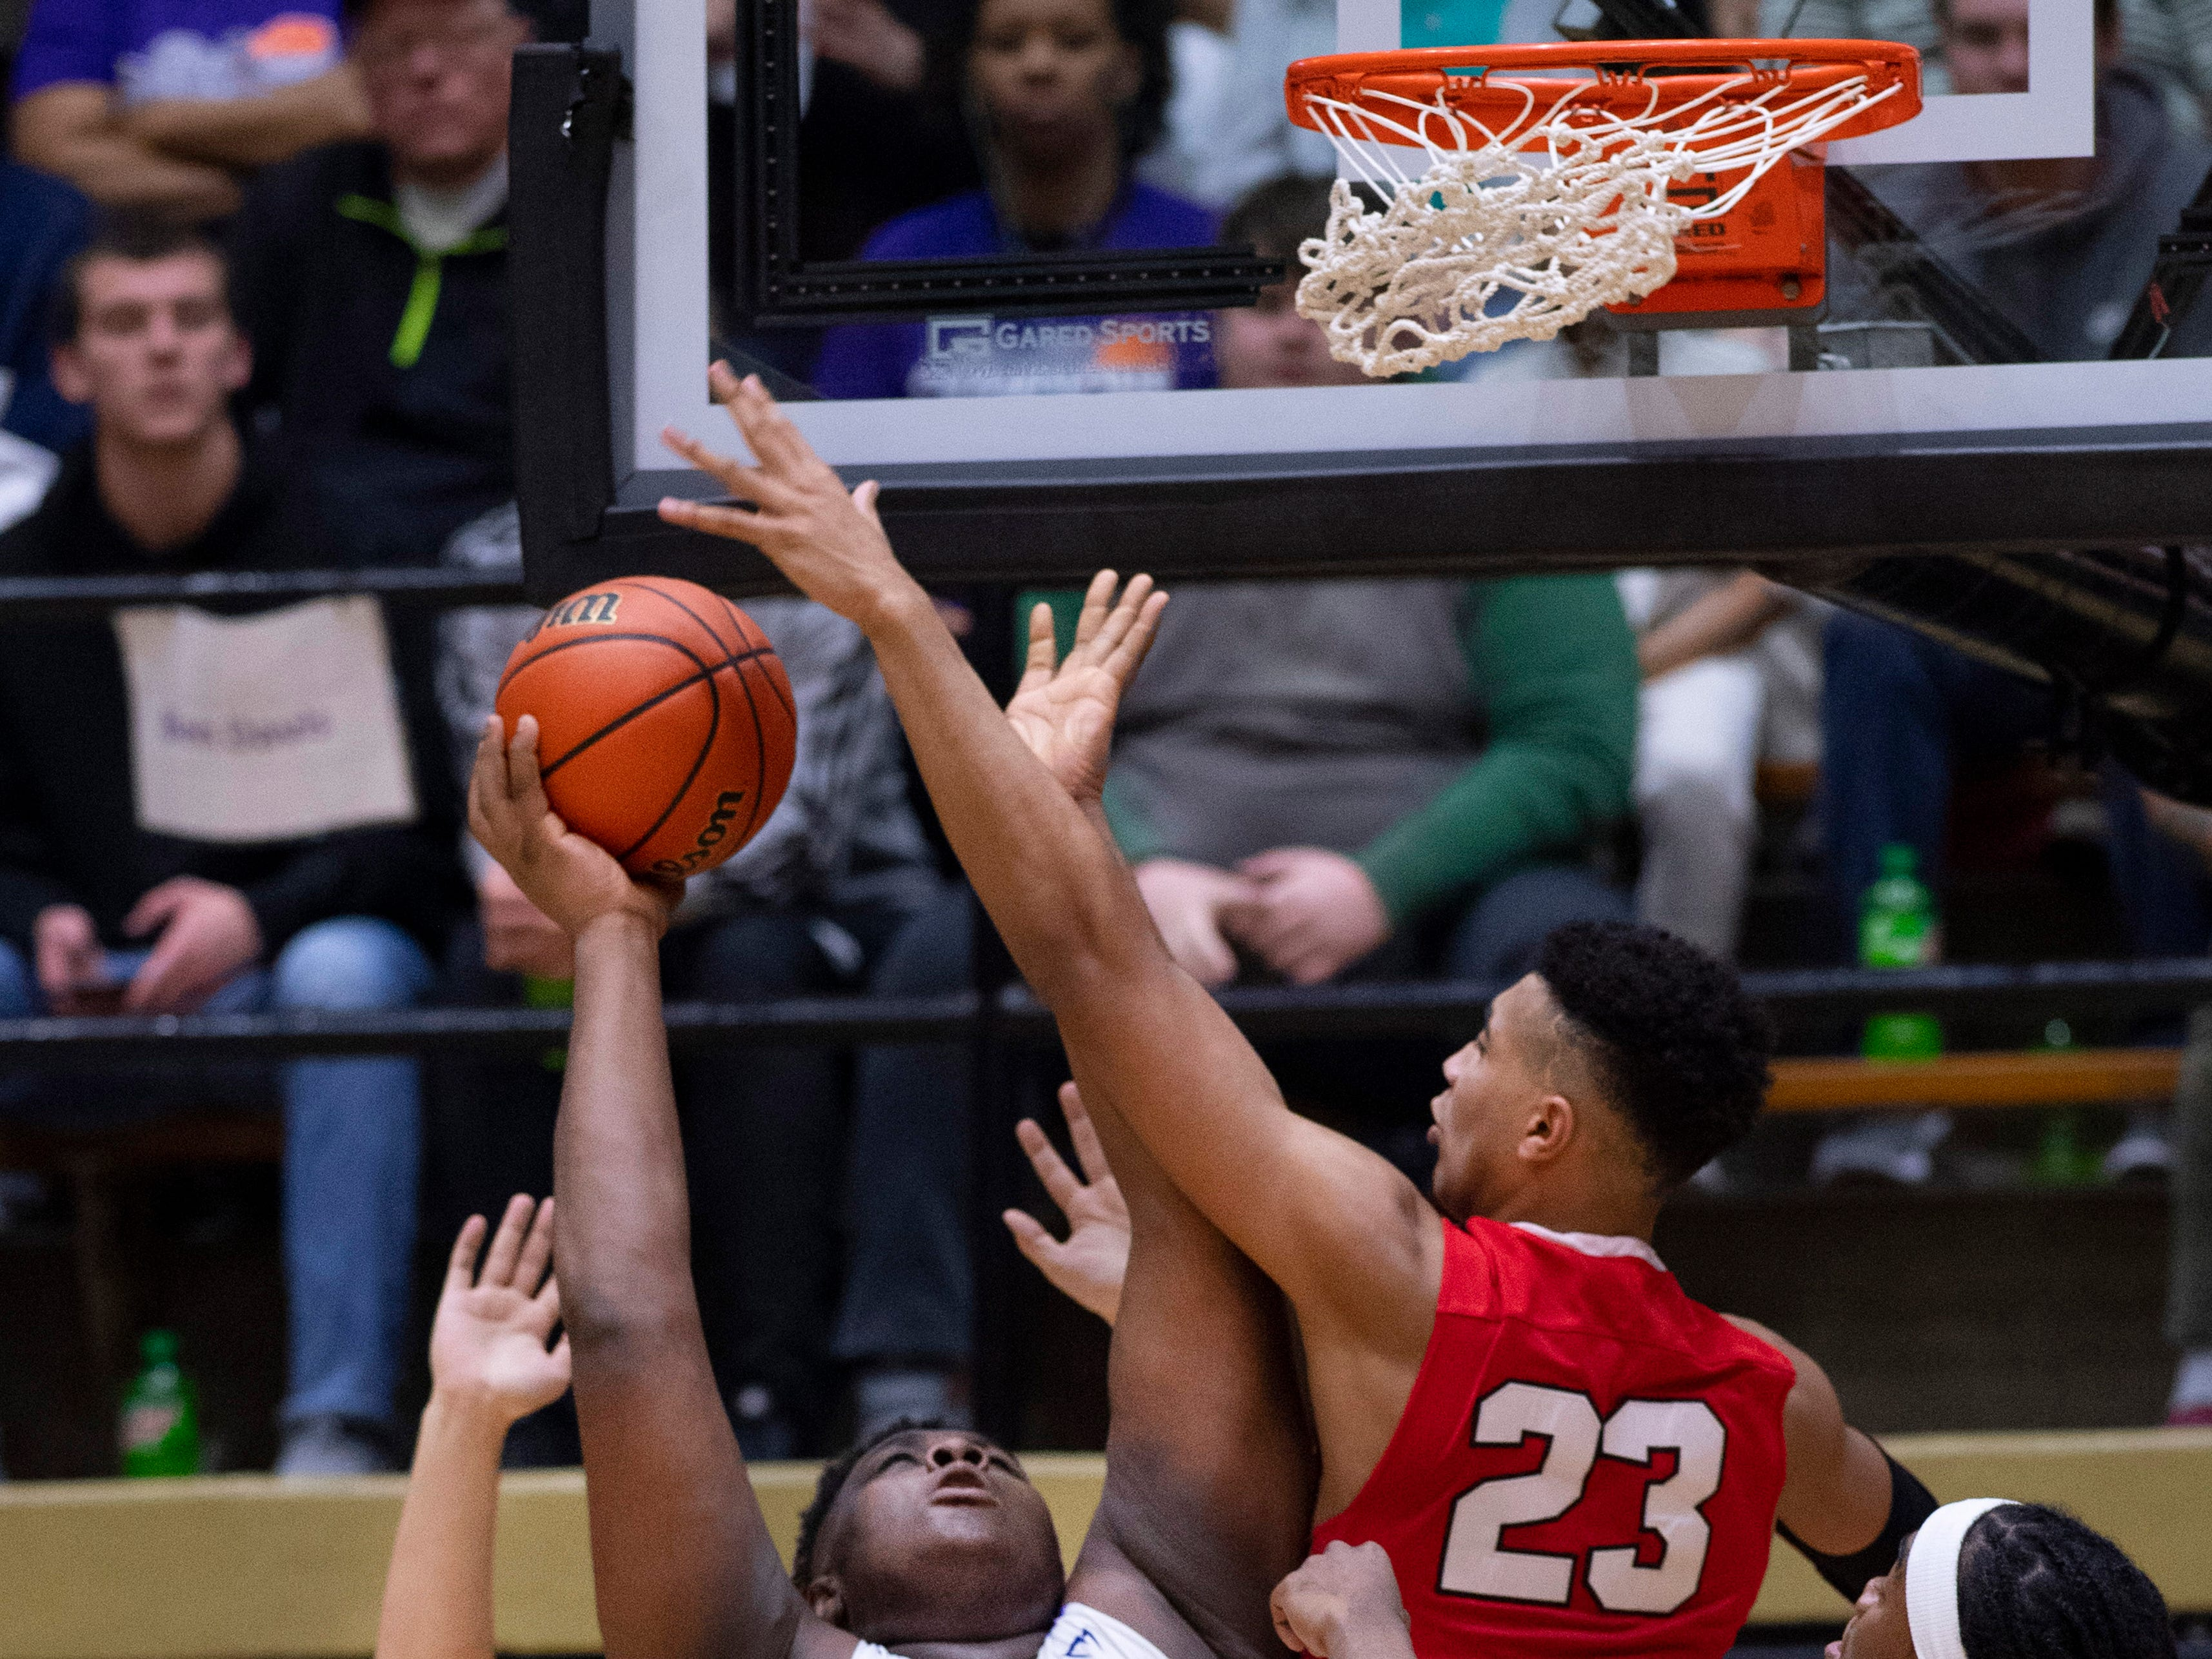 Ben Davis's Dawand Jones (54) is defended by Center Grove's Trayce Jackson-Davis (23) during the 4A Boys Indiana Semi-State Basketball Tournament at the Hatchet House in Washington, Ind., Saturday afternoon.